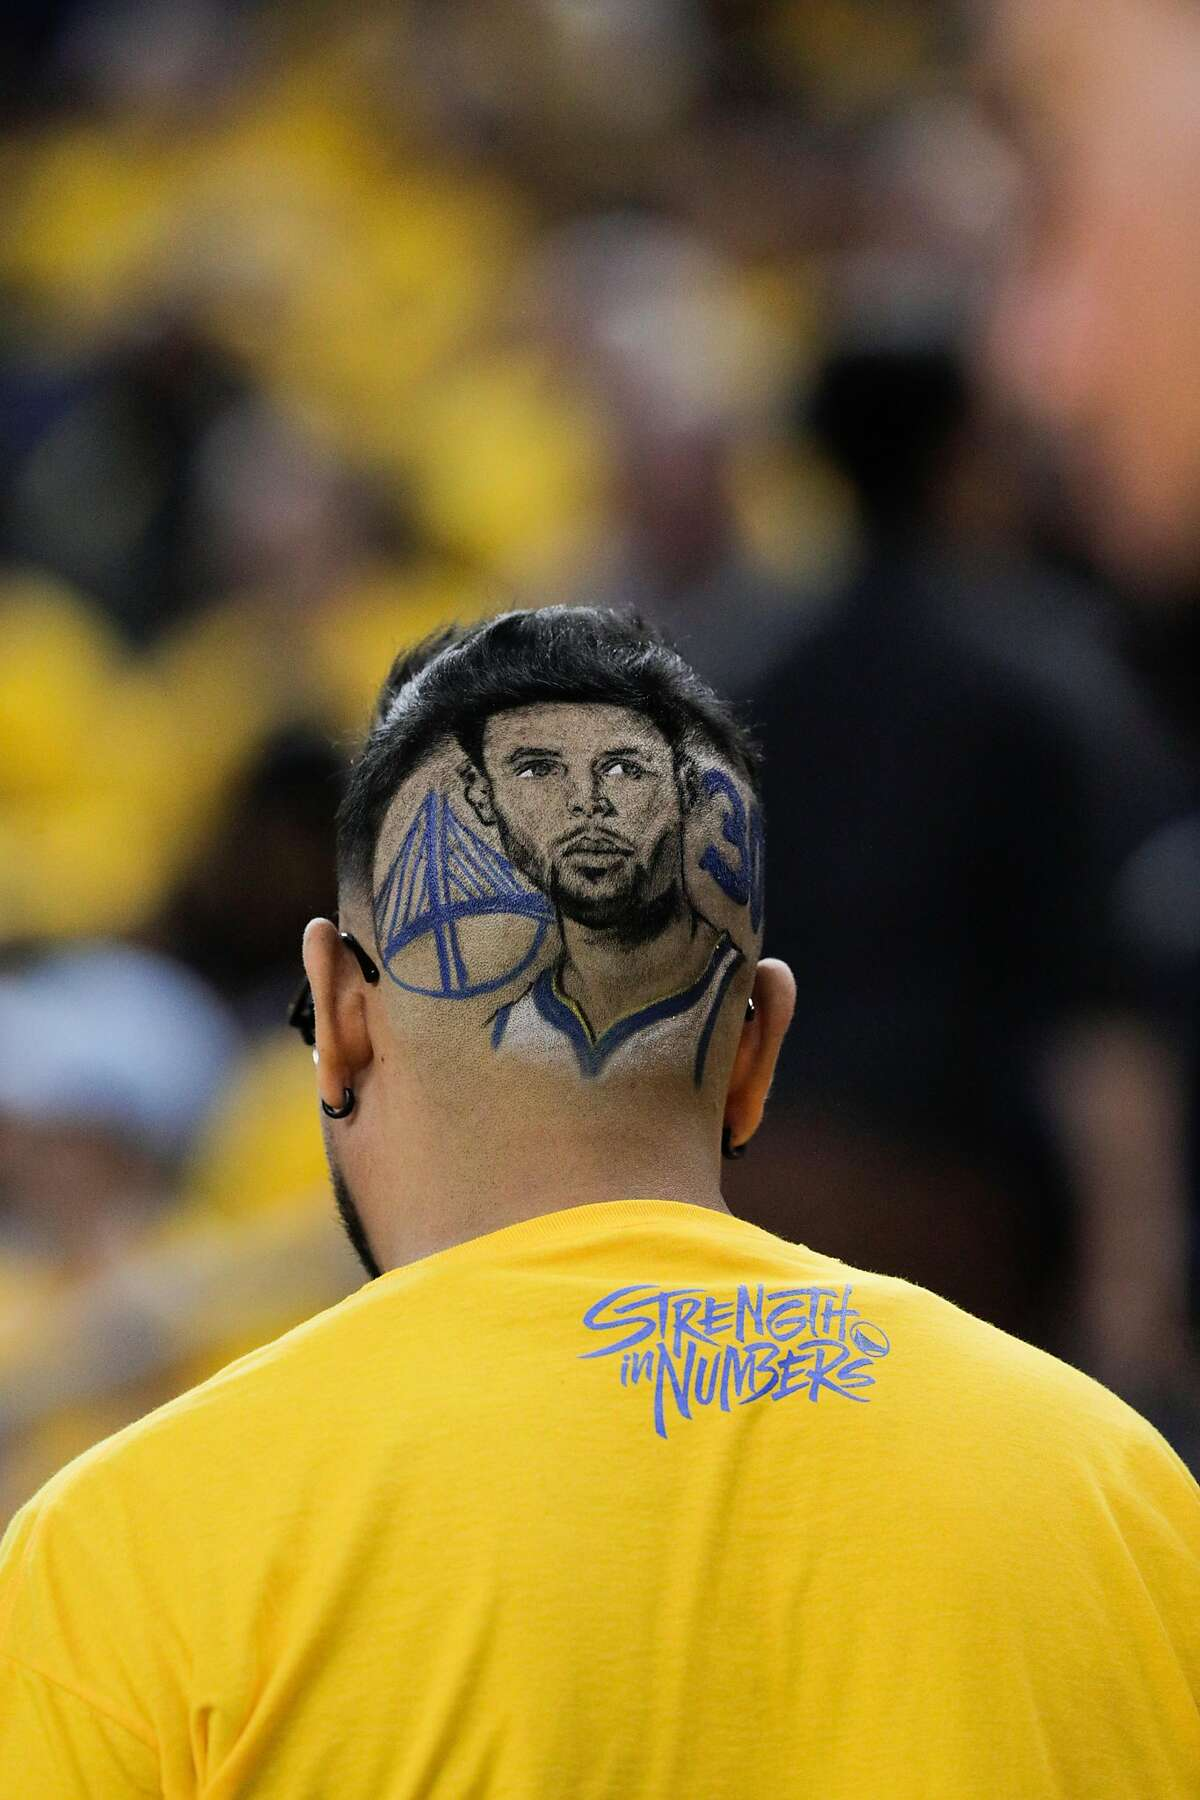 A Golden State Warriors fan displays a unique haircut during game 2 of the Western Conference Playoffs between the Golden State Warriors and the Los Angeles Clippers at Oracle Arena on Monday, April 15, 2019 in Oakland, Calif.